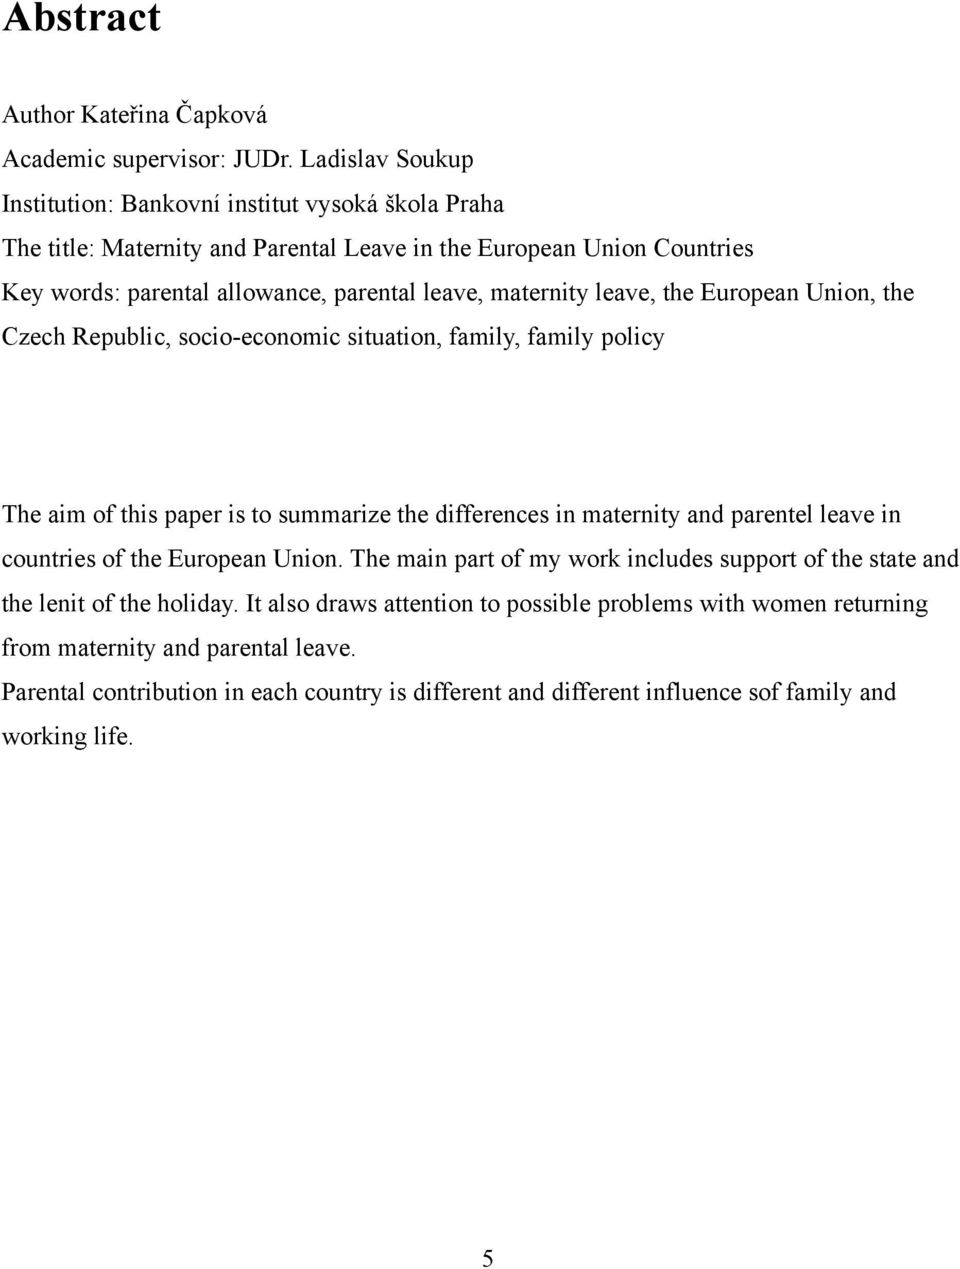 maternity leave, the European Union, the Czech Republic, socio-economic situation, family, family policy The aim of this paper is to summarize the differences in maternity and parentel leave